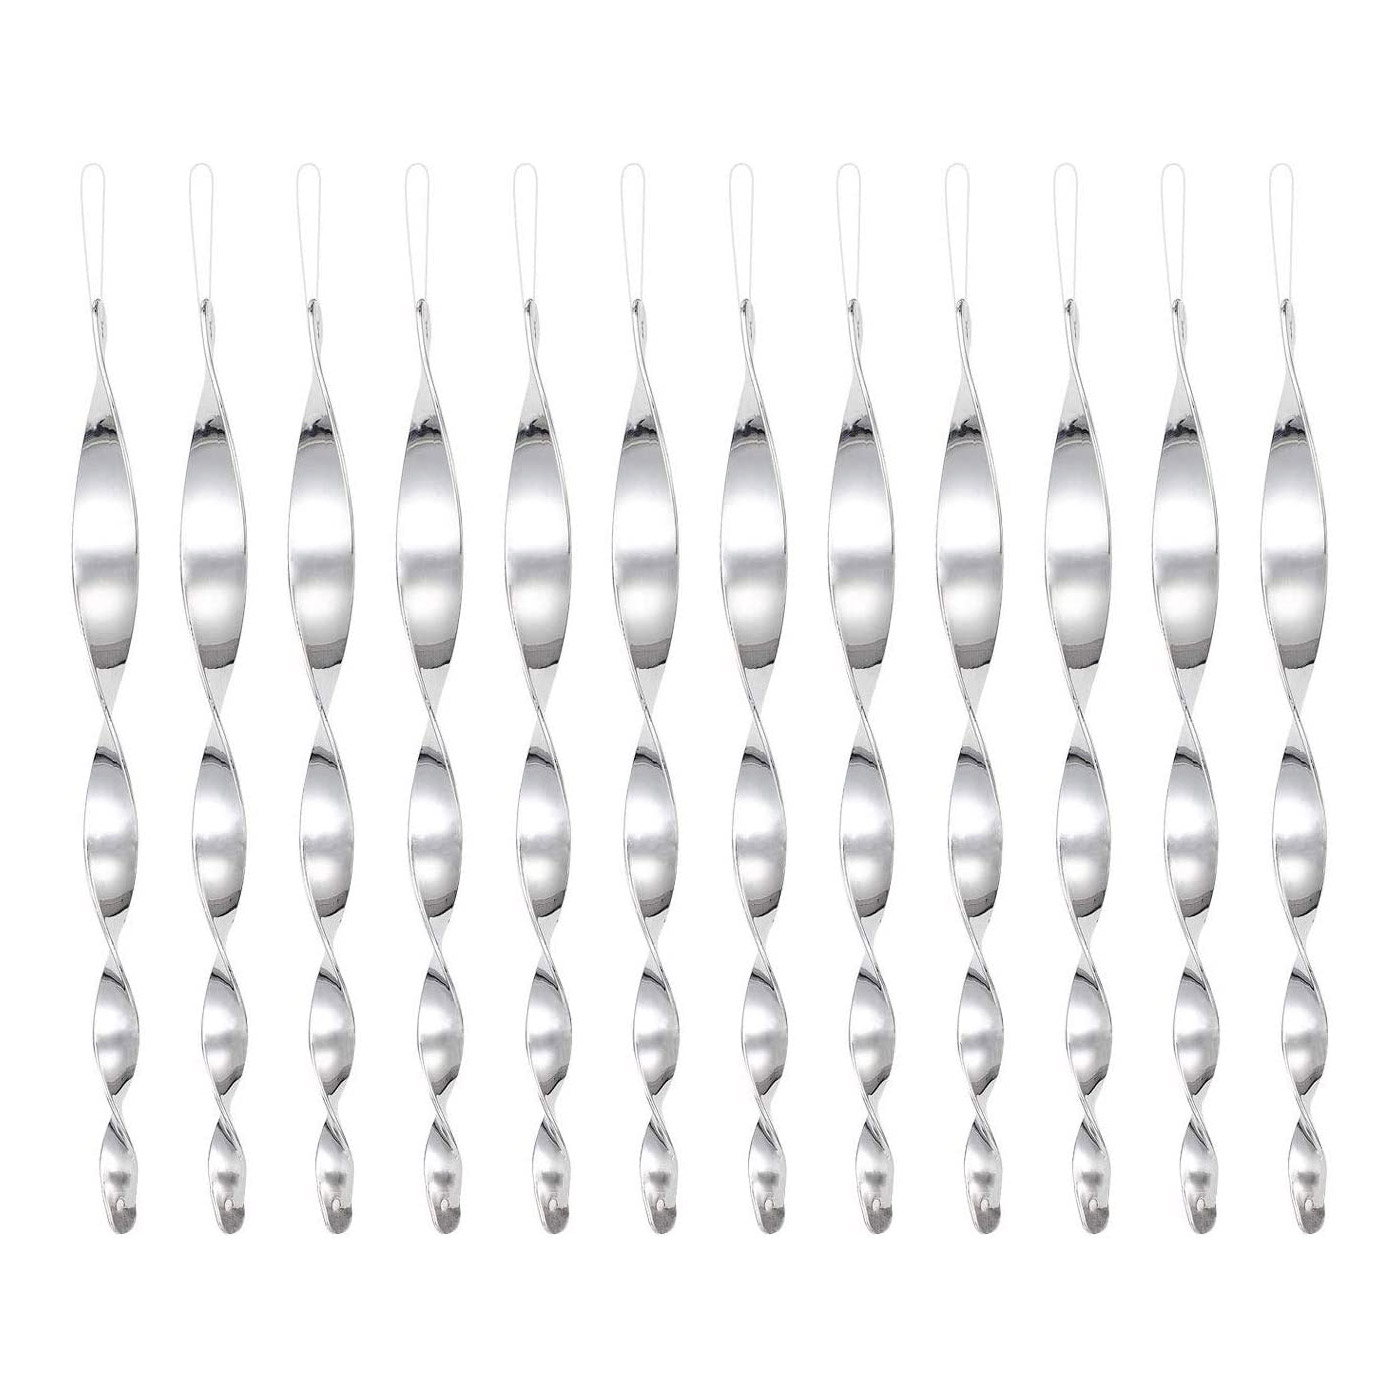 12Pcs Spiral Shape Hanging Reflective Bird Scare Repellent Rods for Garden Yard Spike Pest Control Bird Repellent